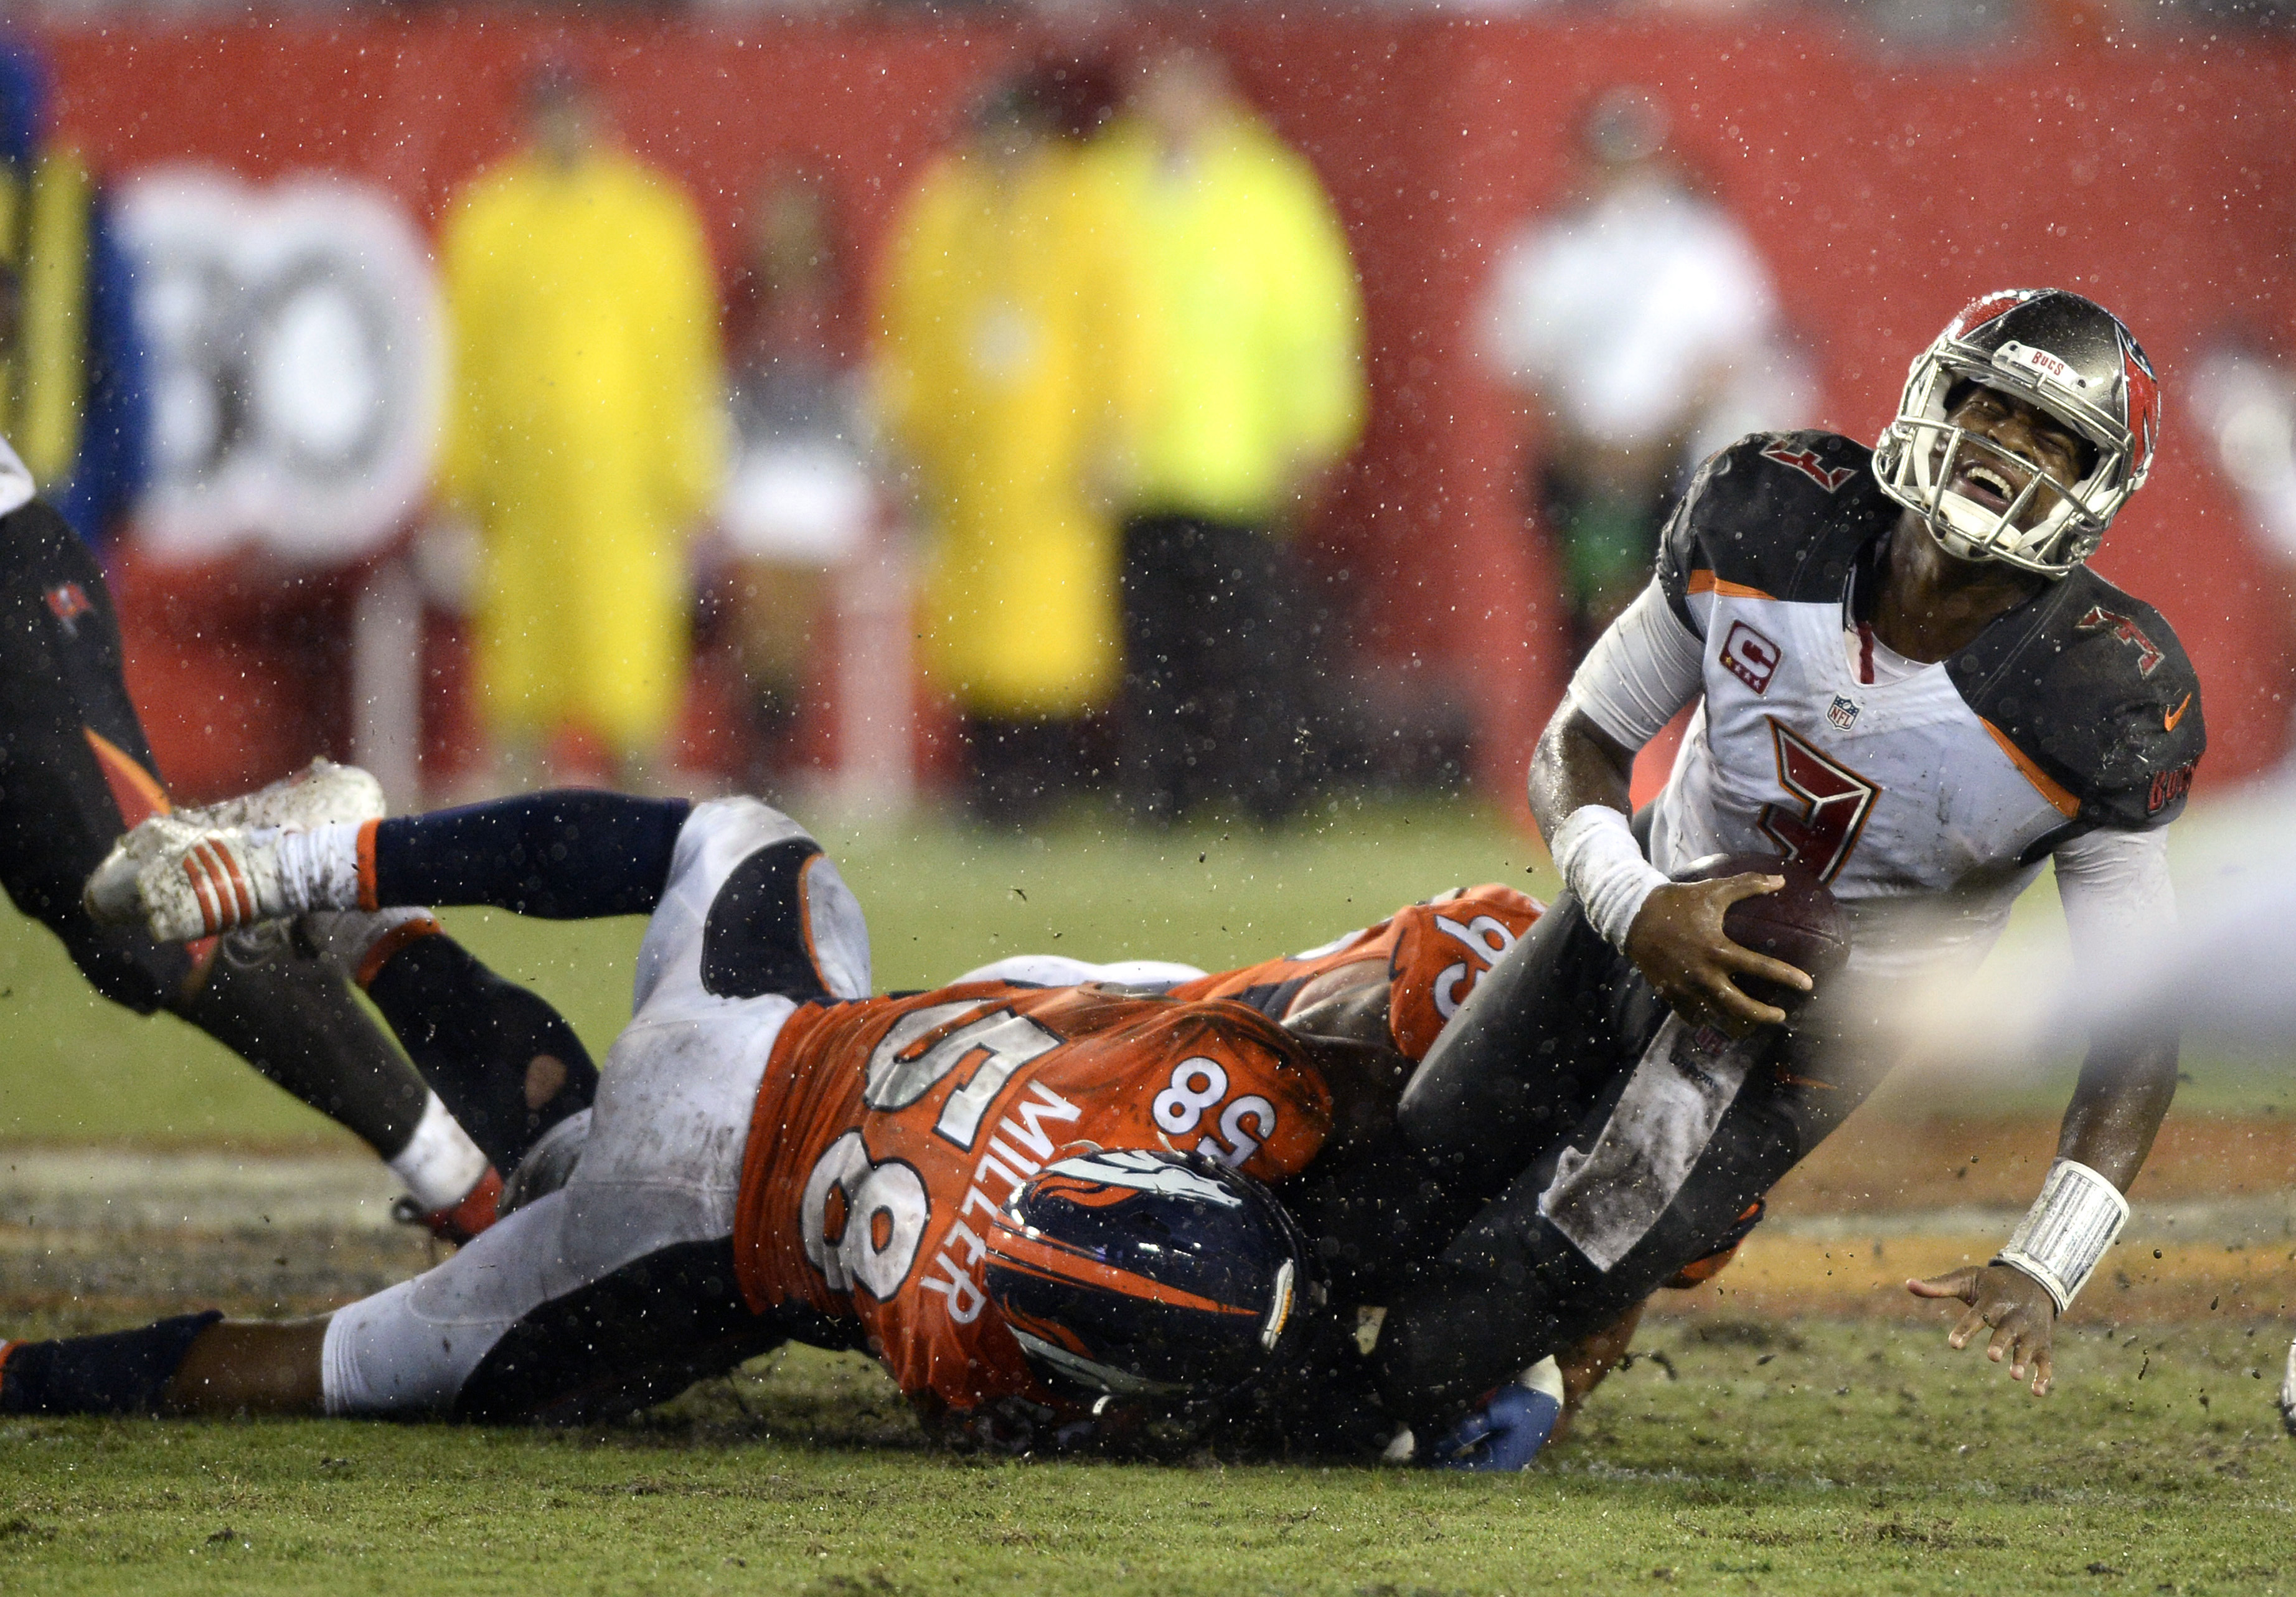 FILE - In this Oct. 2, 2016, file photo, Tampa Bay Buccaneers quarterback Jameis Winston (3) is sacked by Denver Broncos outside linebacker Von Miller (58) during the fourth quarter of an NFL football game in Tampa, Fla. If Miller spins his way to a sack